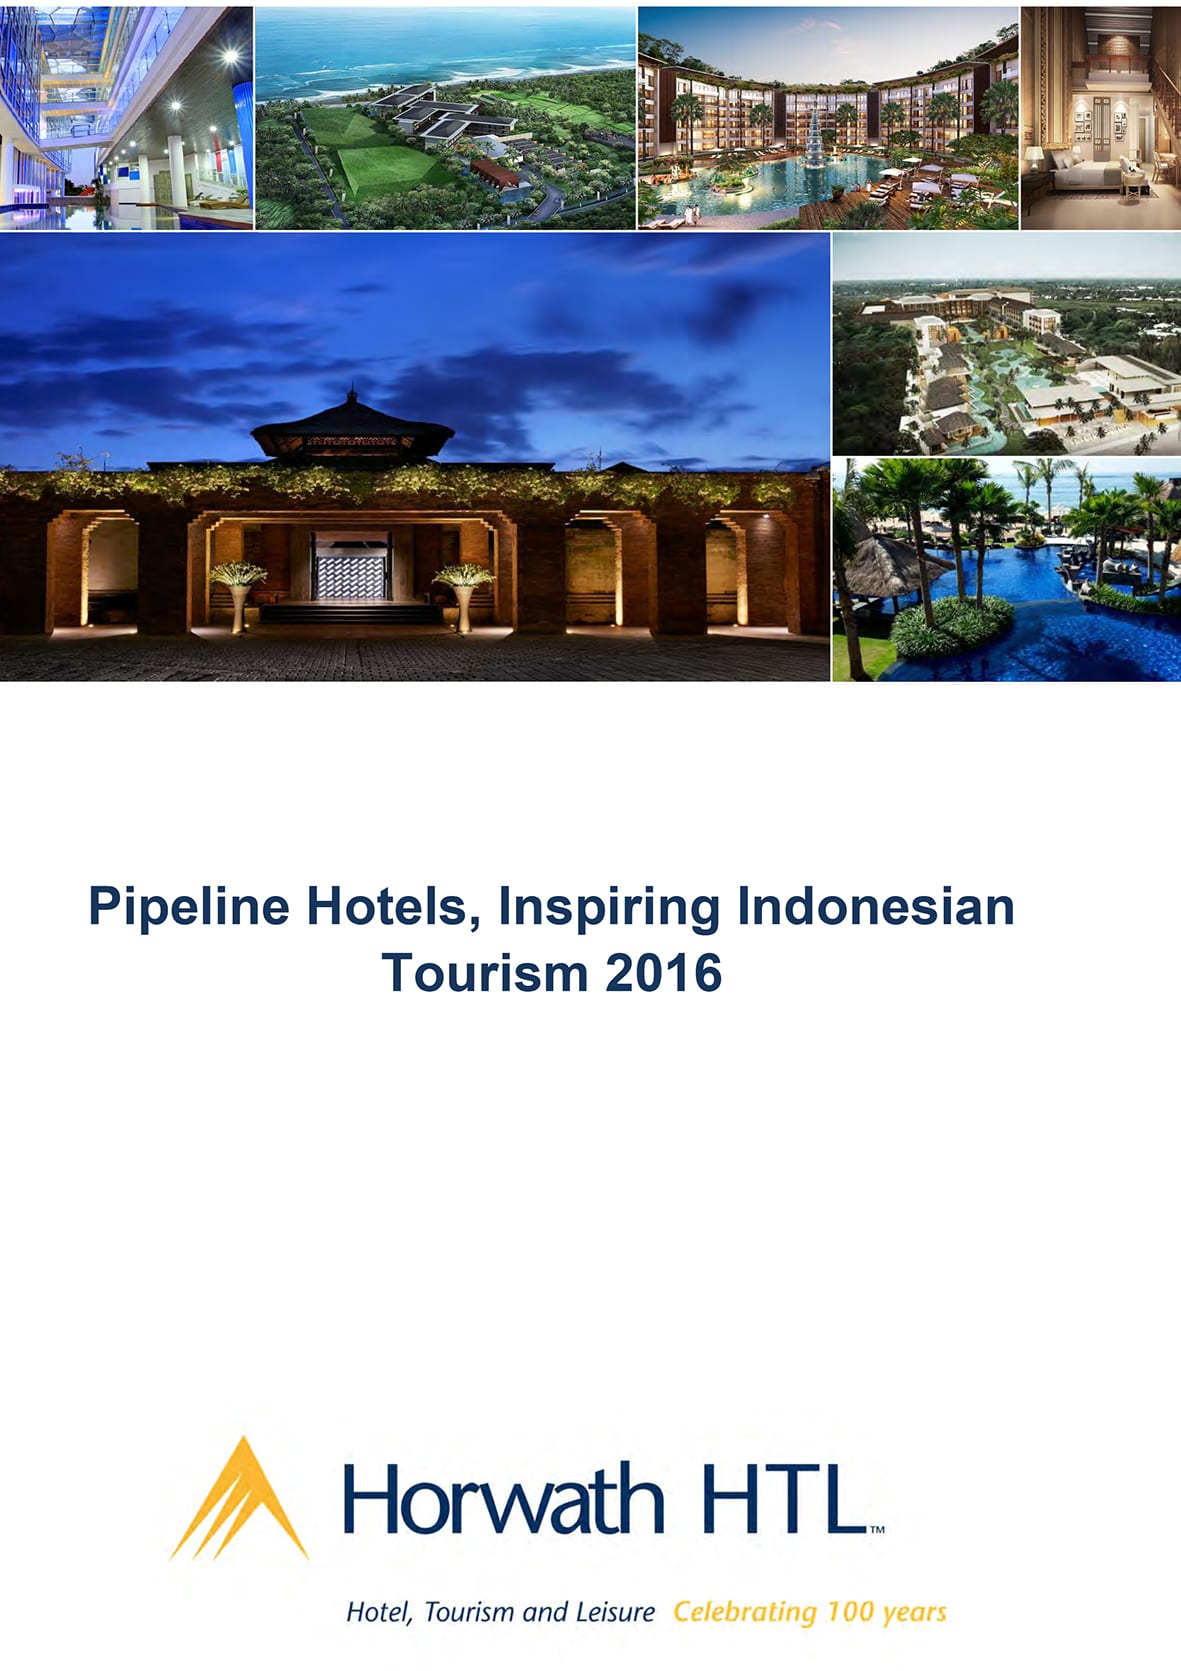 Pipeline Hotels 161115 updated 1